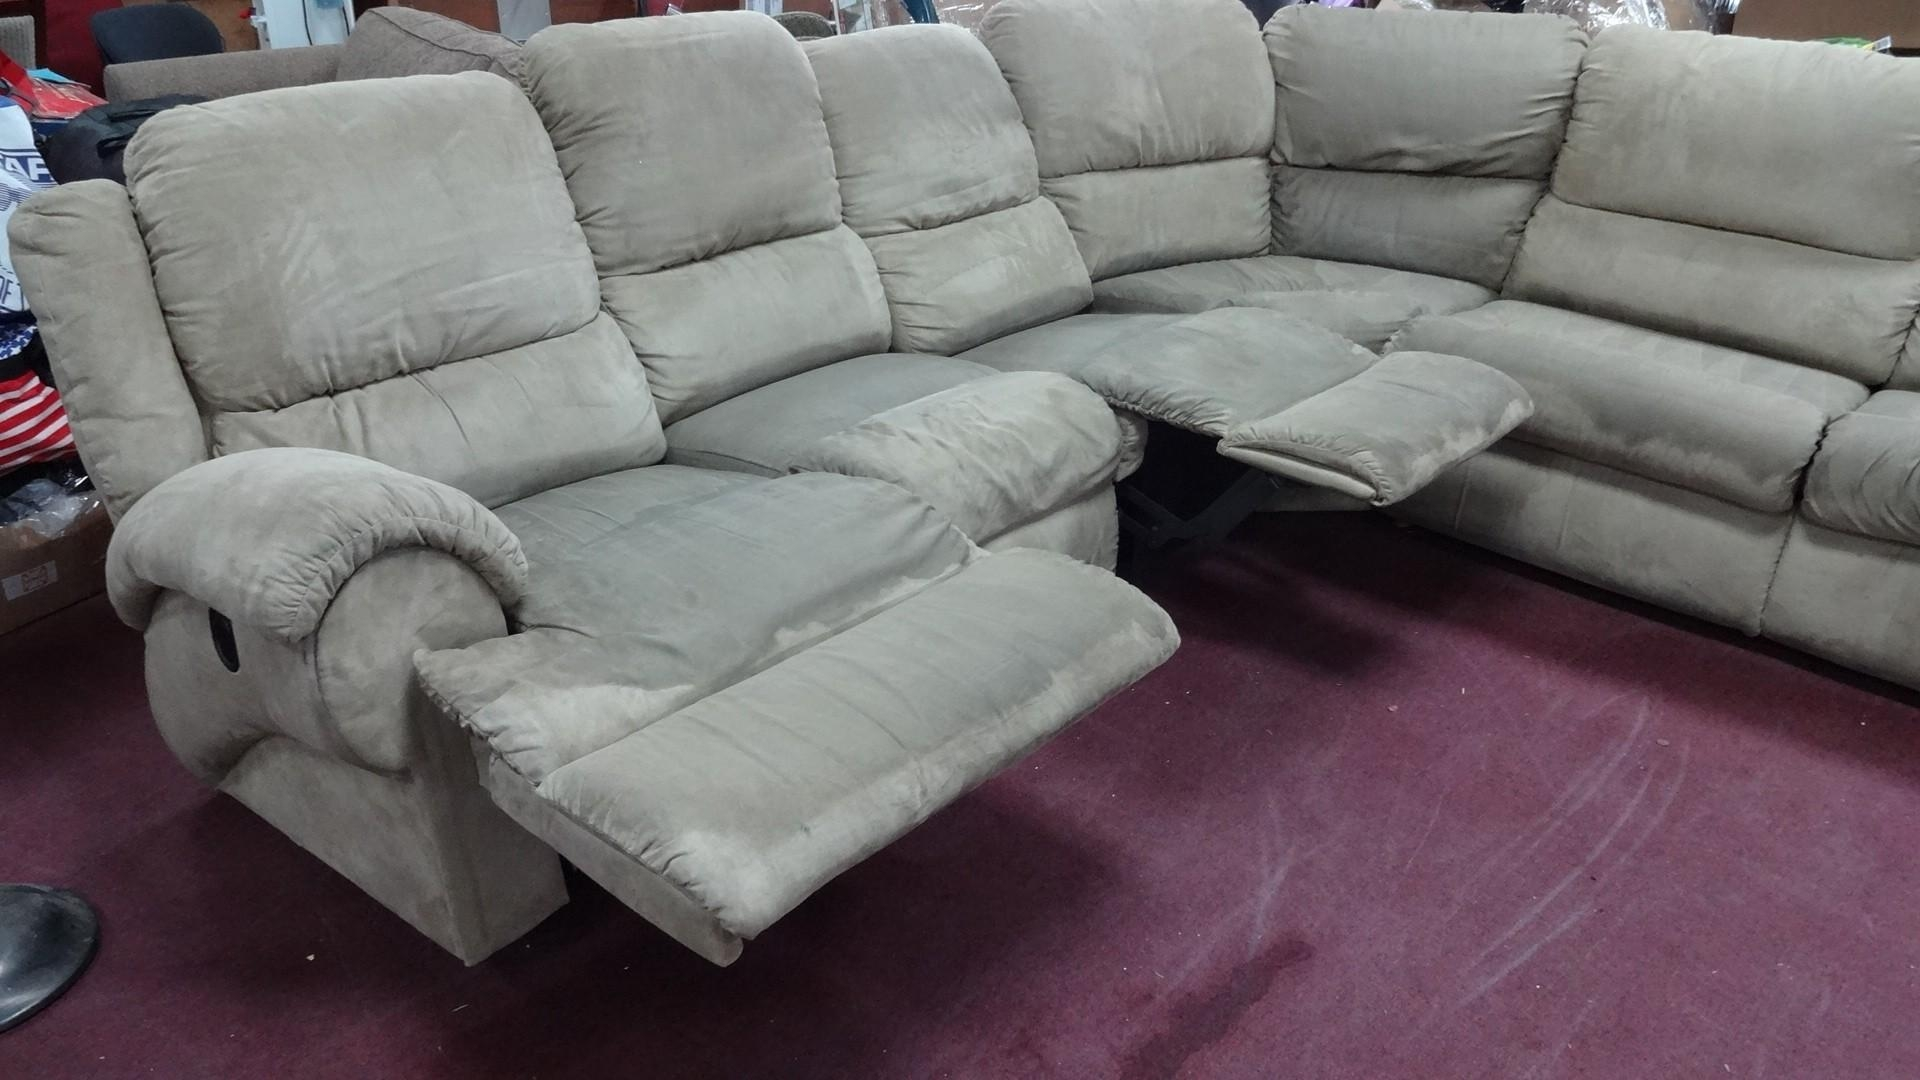 Sofas Center : Sectional Sofa Design Lazy Boy Sale James Sofas Intended For Lazyboy Sectional Sofas (Image 18 of 20)